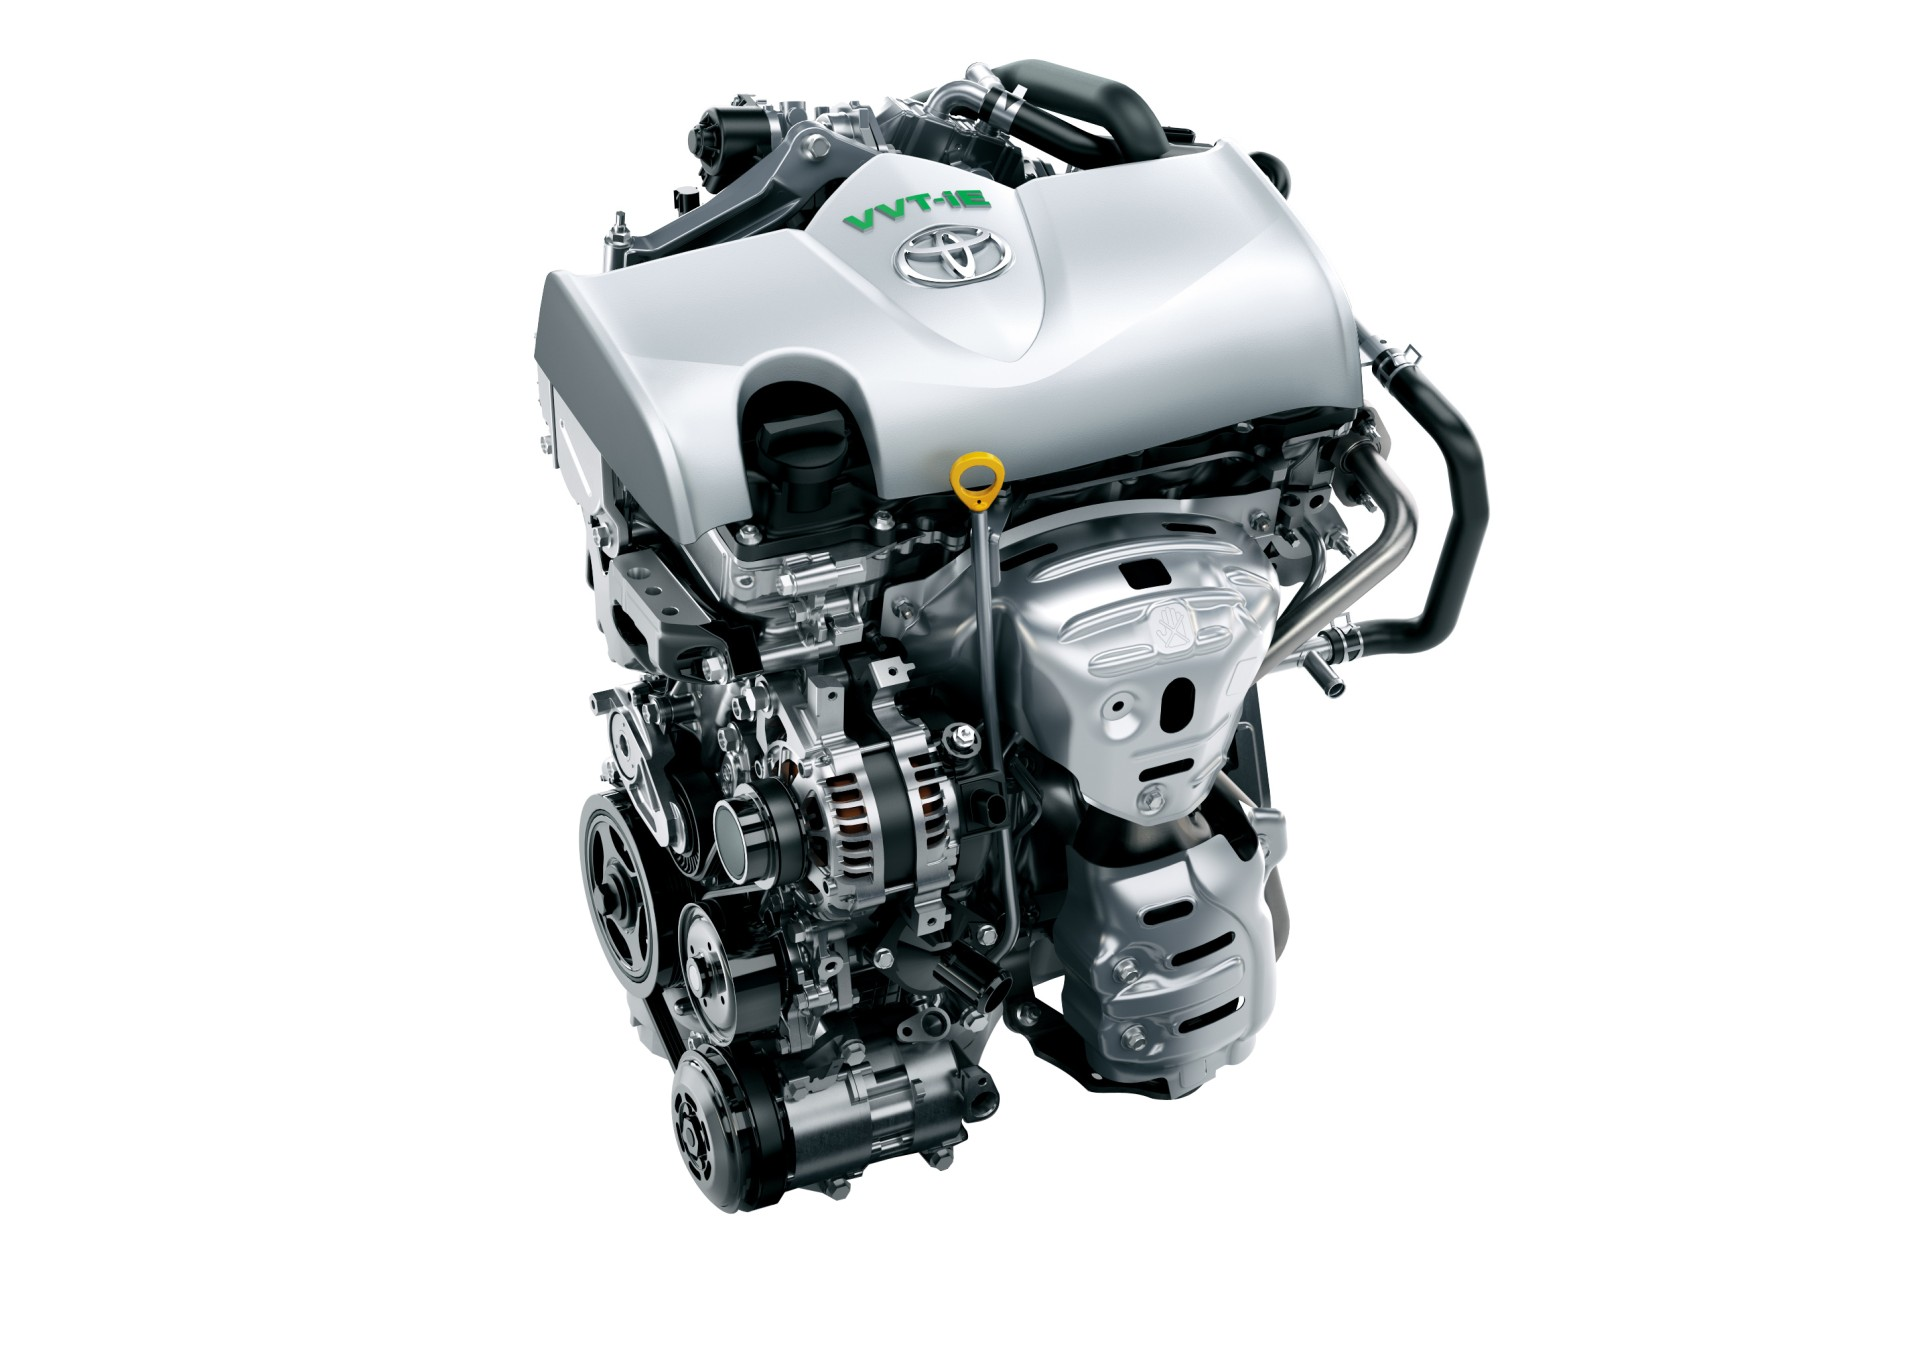 Toyota's New Engines Improve Fuel Efficiency - The Green Optimistic